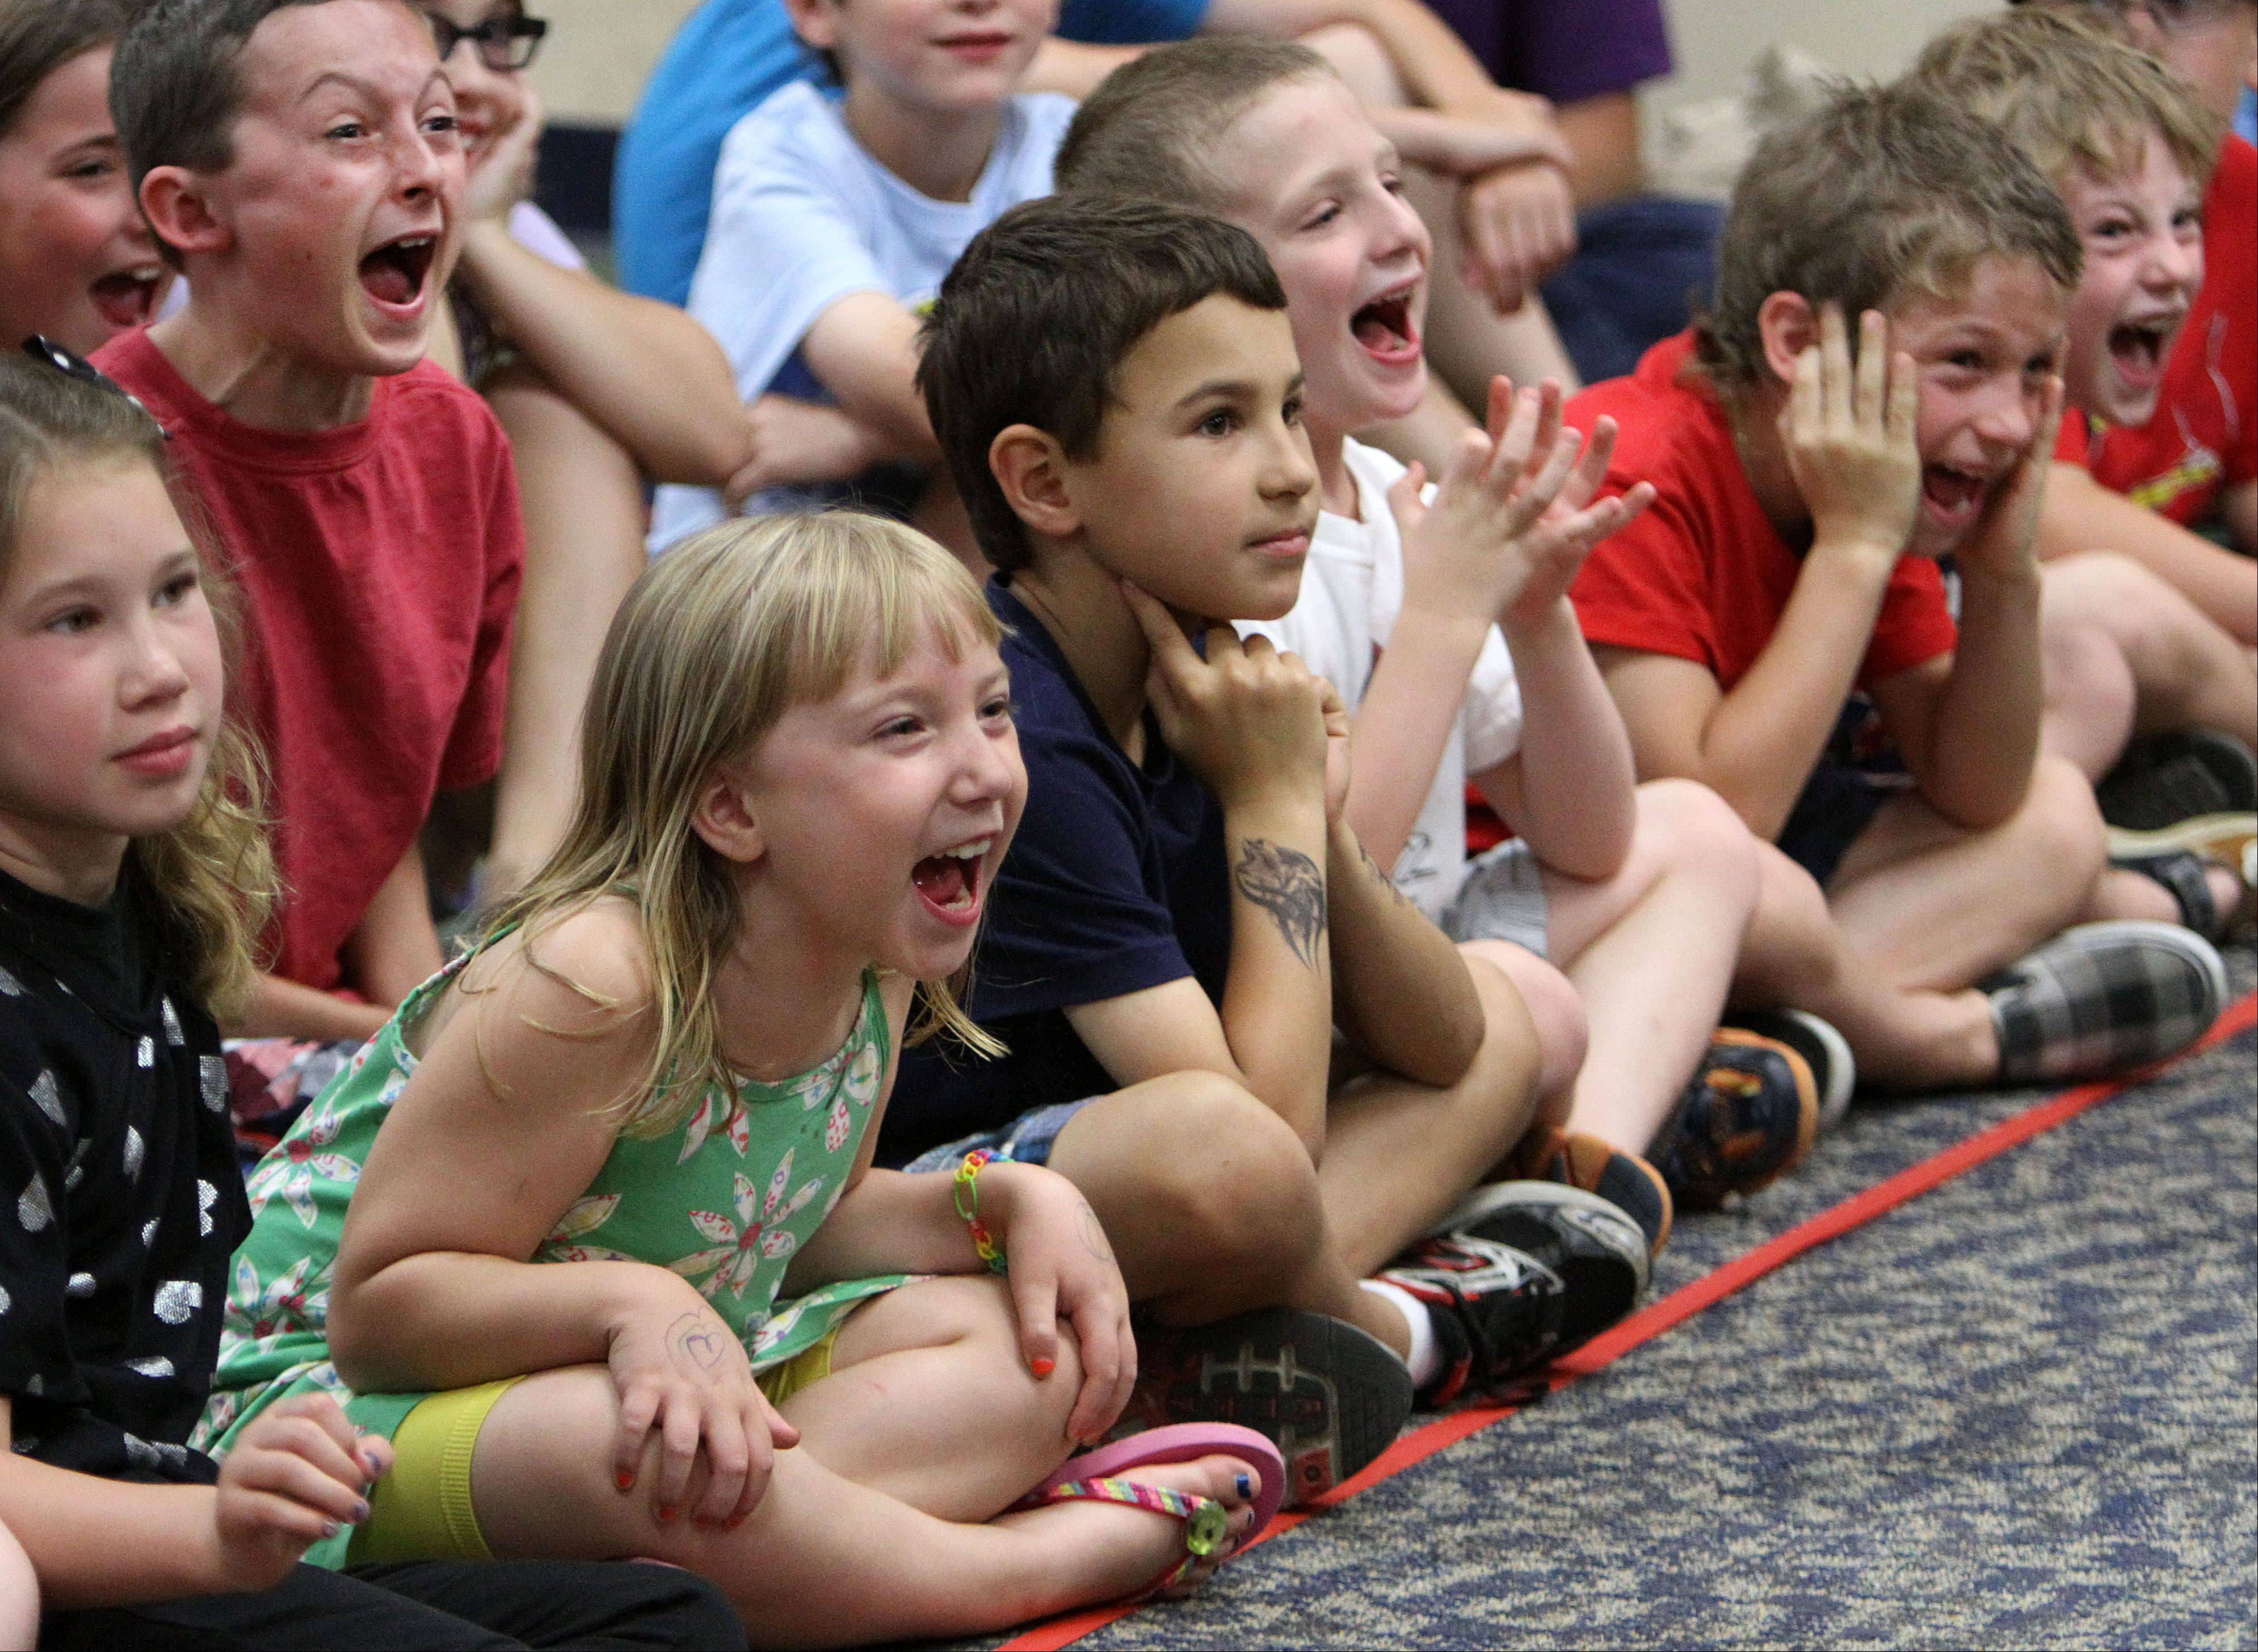 Kids react to magic tricks by Ron Clayton, A.K.A. Ron the Wizard, at Fremont Public Library Monday night in Mundelein.